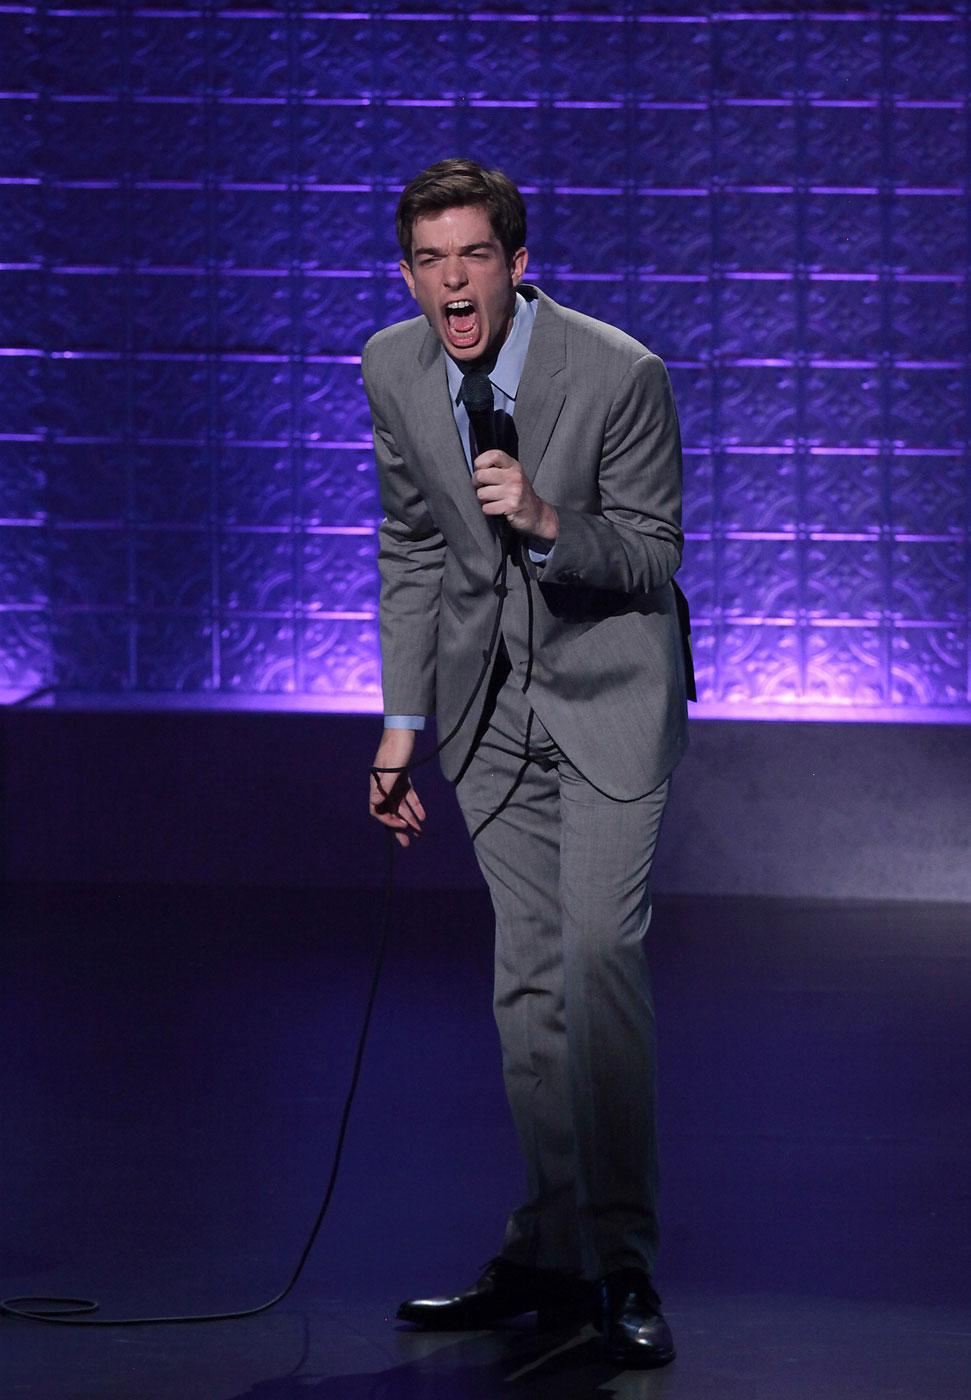 Mulaney has done two major comedy specials:  The Top Part  (2009) and  New In Town  (2012 —pictured above).  Both earned critical acclaim and established him as a comic's comic.